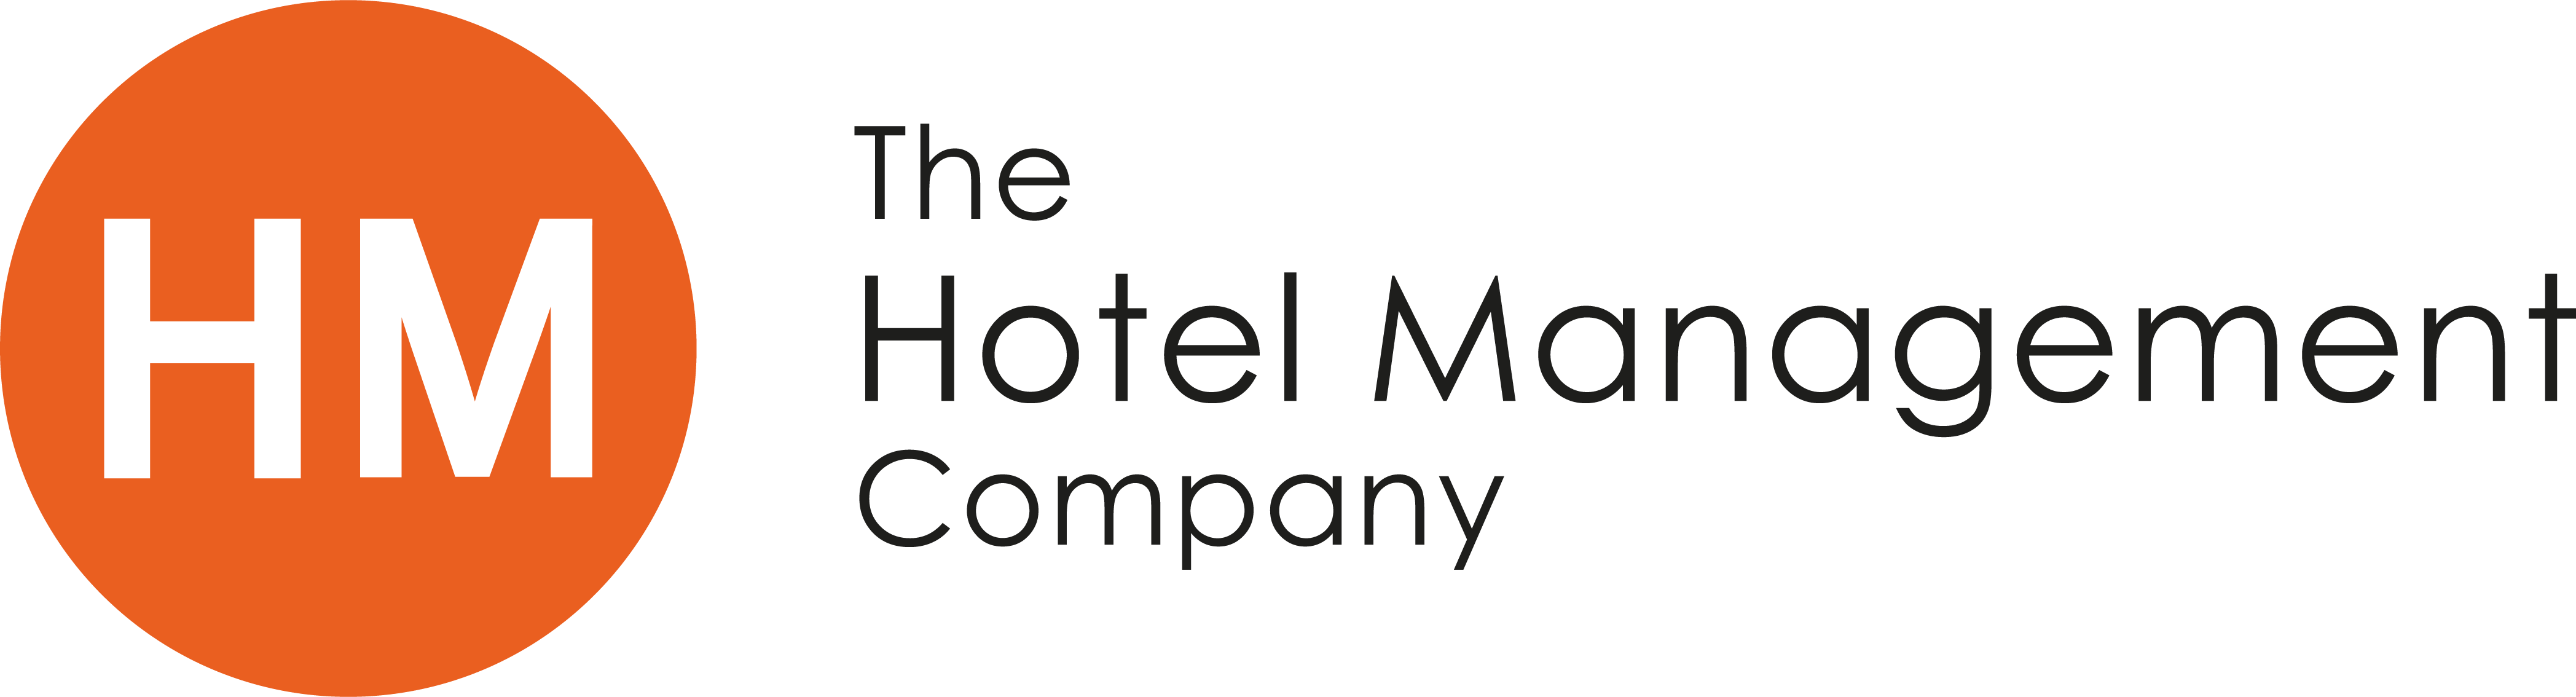 The Hotel Management Co